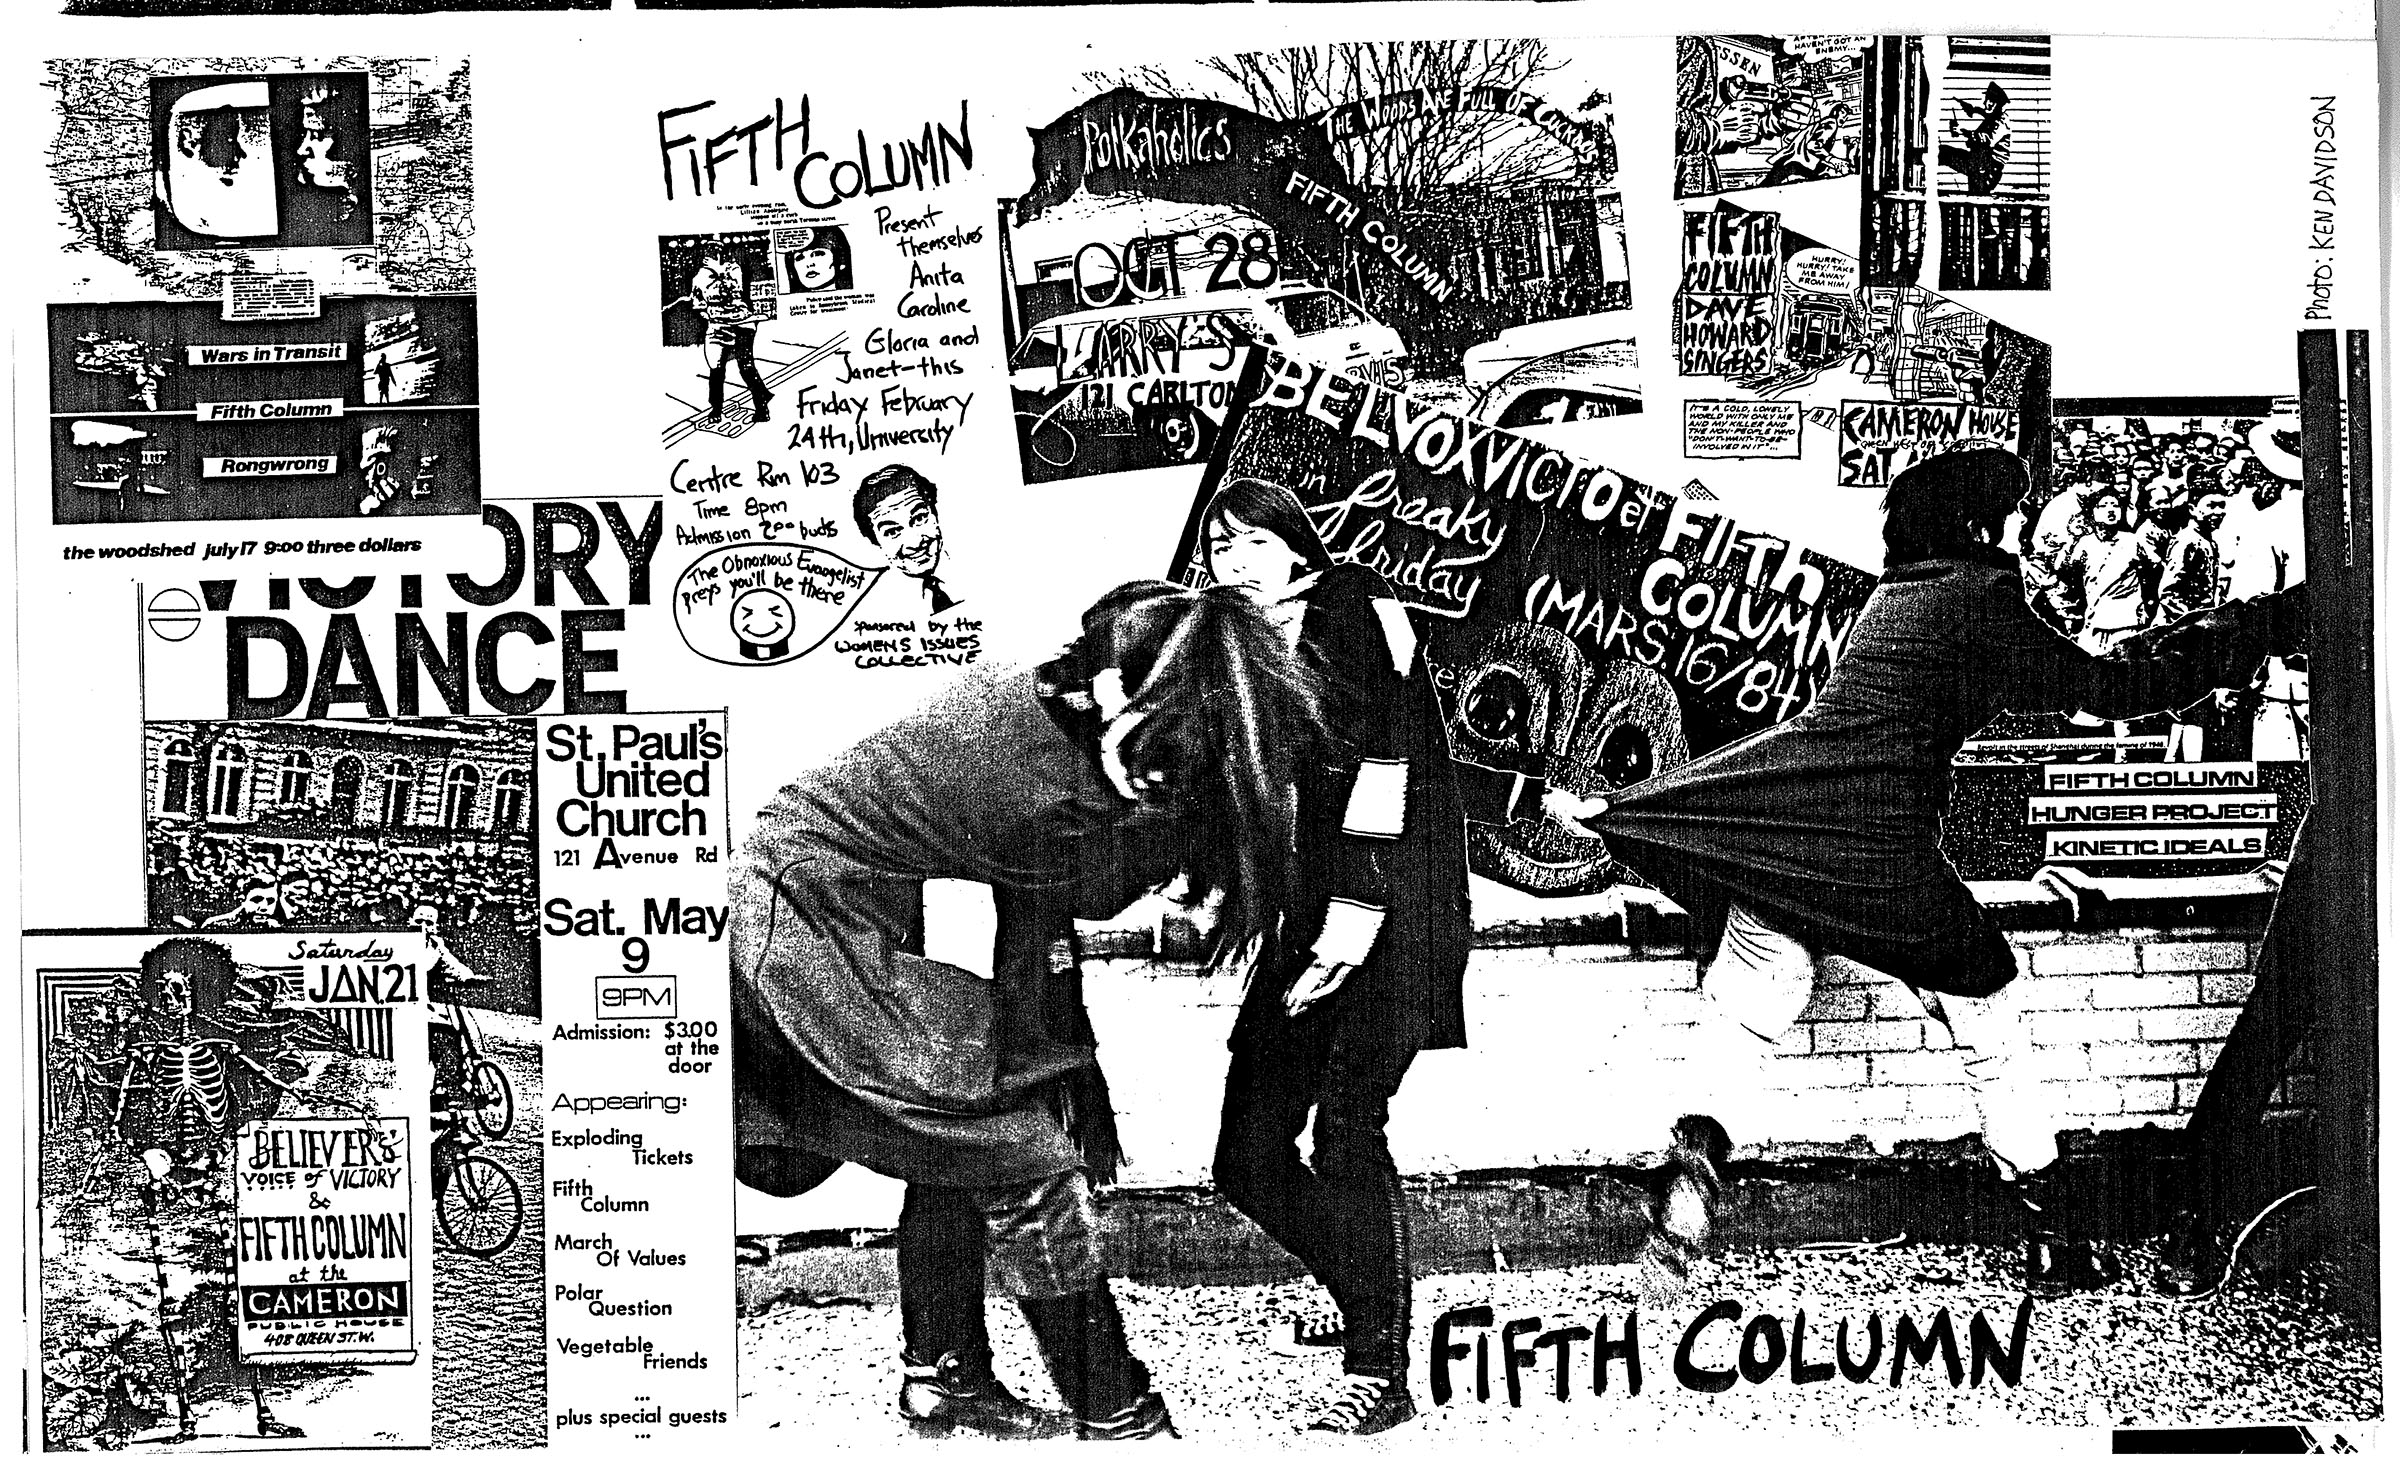 A collage of images displayed in black and white, featuring a range of posters and flyers for Fifth Column and other bands. At the center are two women. The woman on the right is standing, slightly leaning backwards. The woman on the left bends over and holds onto the back of a jacket of another woman who is running away from the two women.